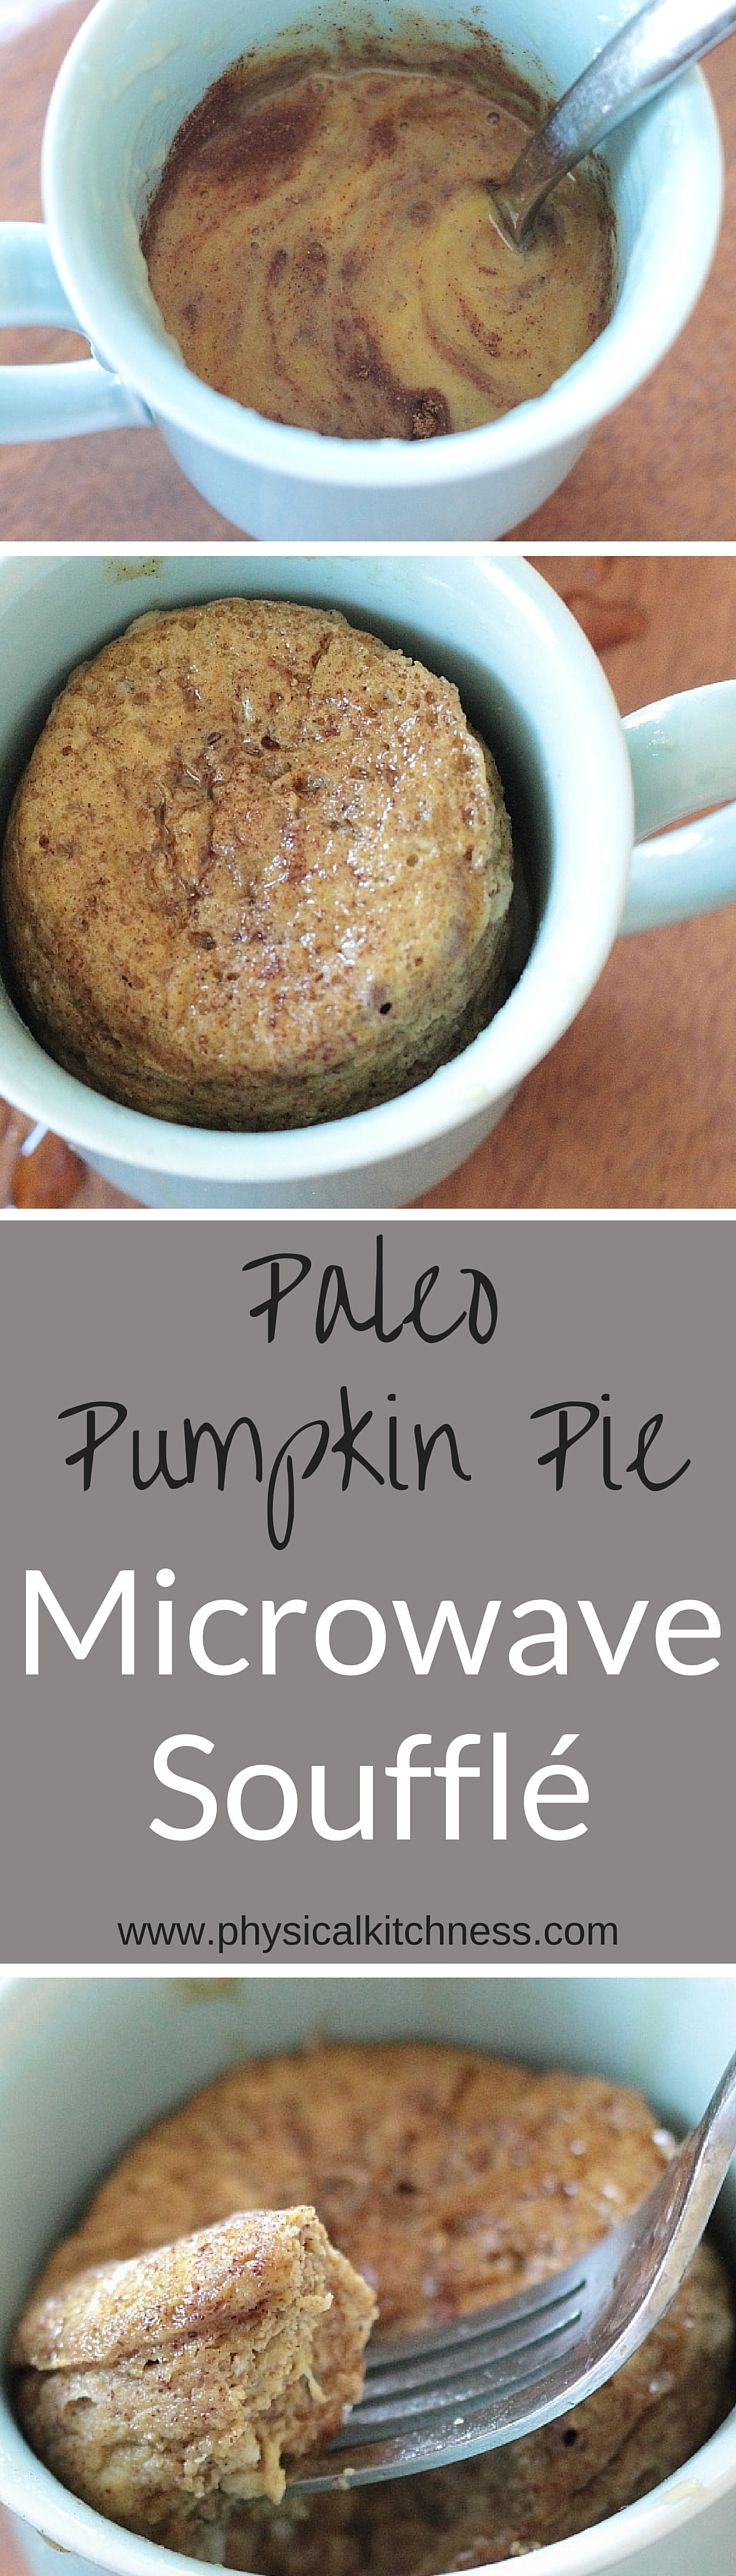 5-minute, Paleo Pumpkin Pie Microwave Soufflé. A warm and delicious, gluten-free, dairy-free breakfast